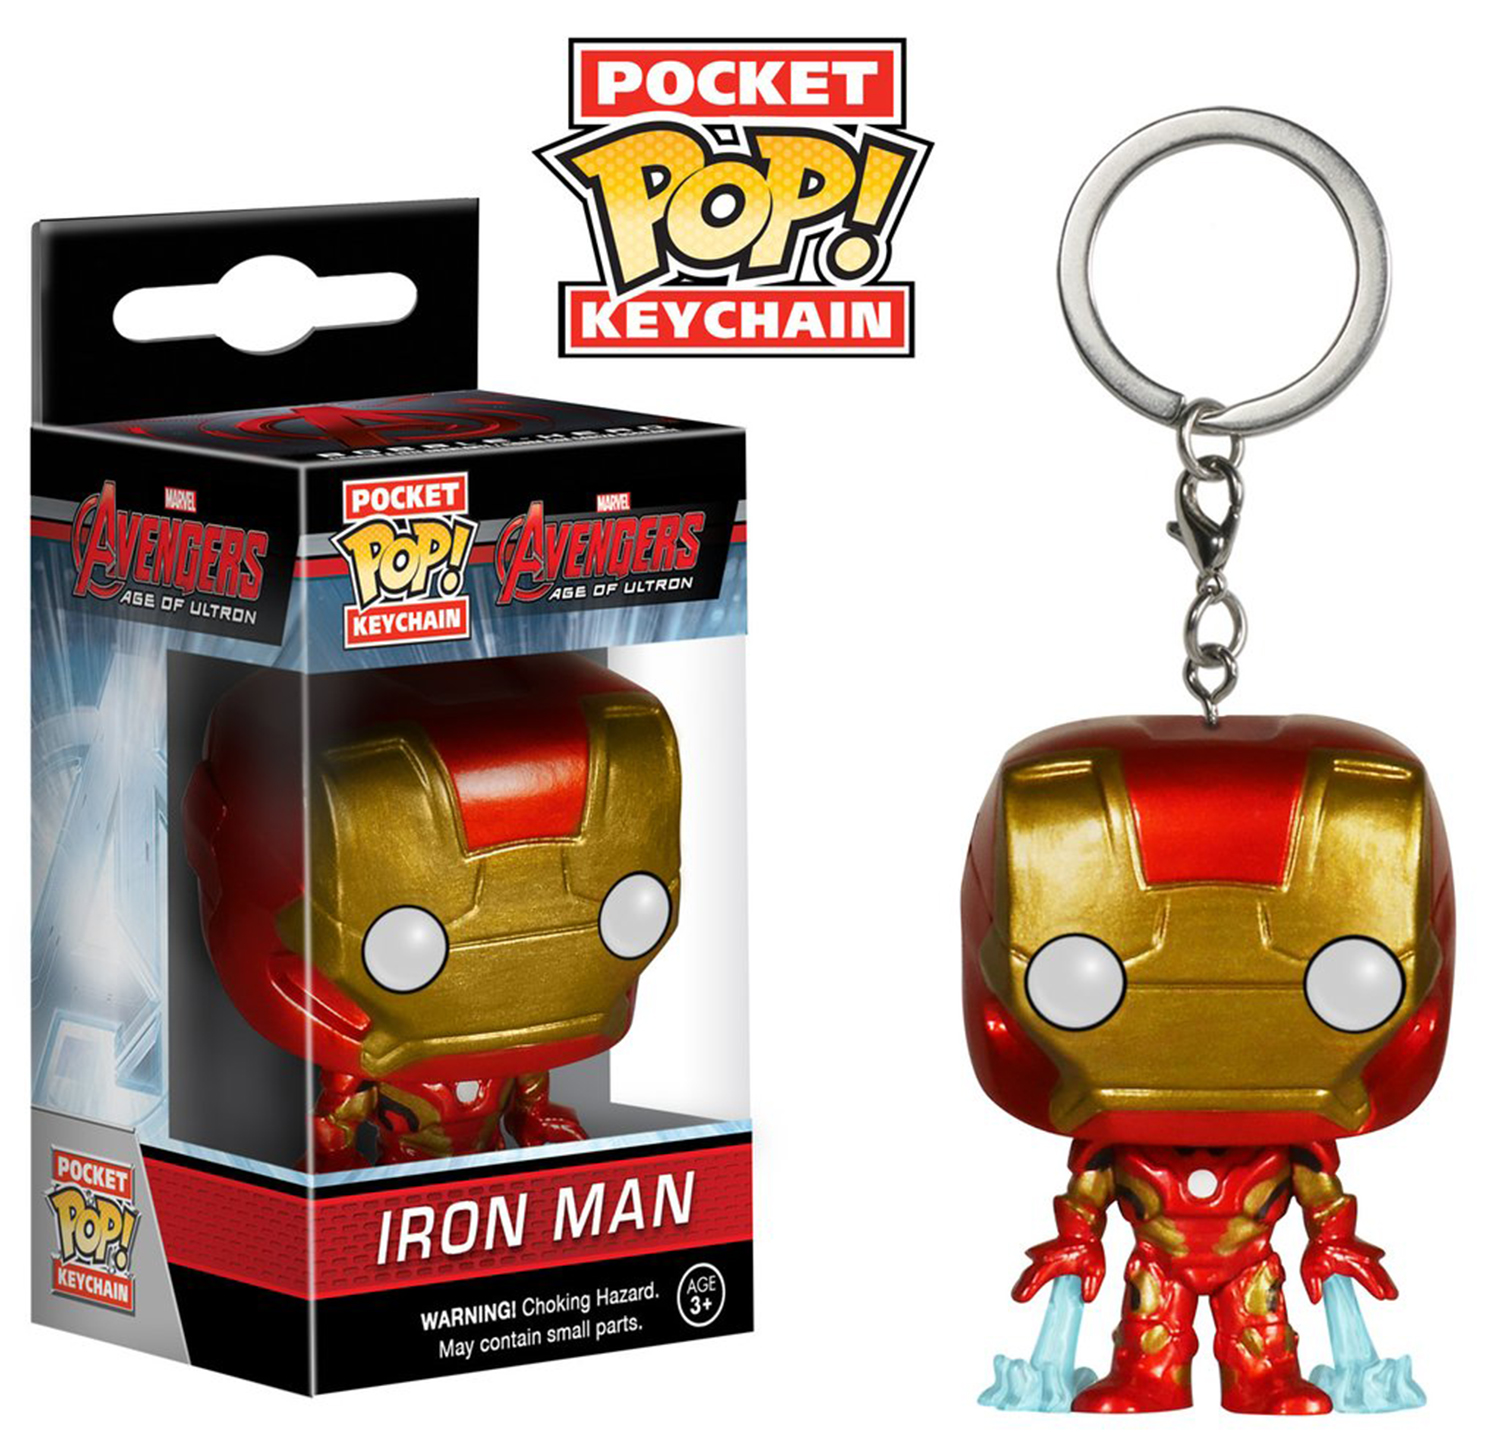 Collectible Toy Funko Avengers Age of Ultron Iron Man Pocket Pop! Key Chain (Multipack of 3)